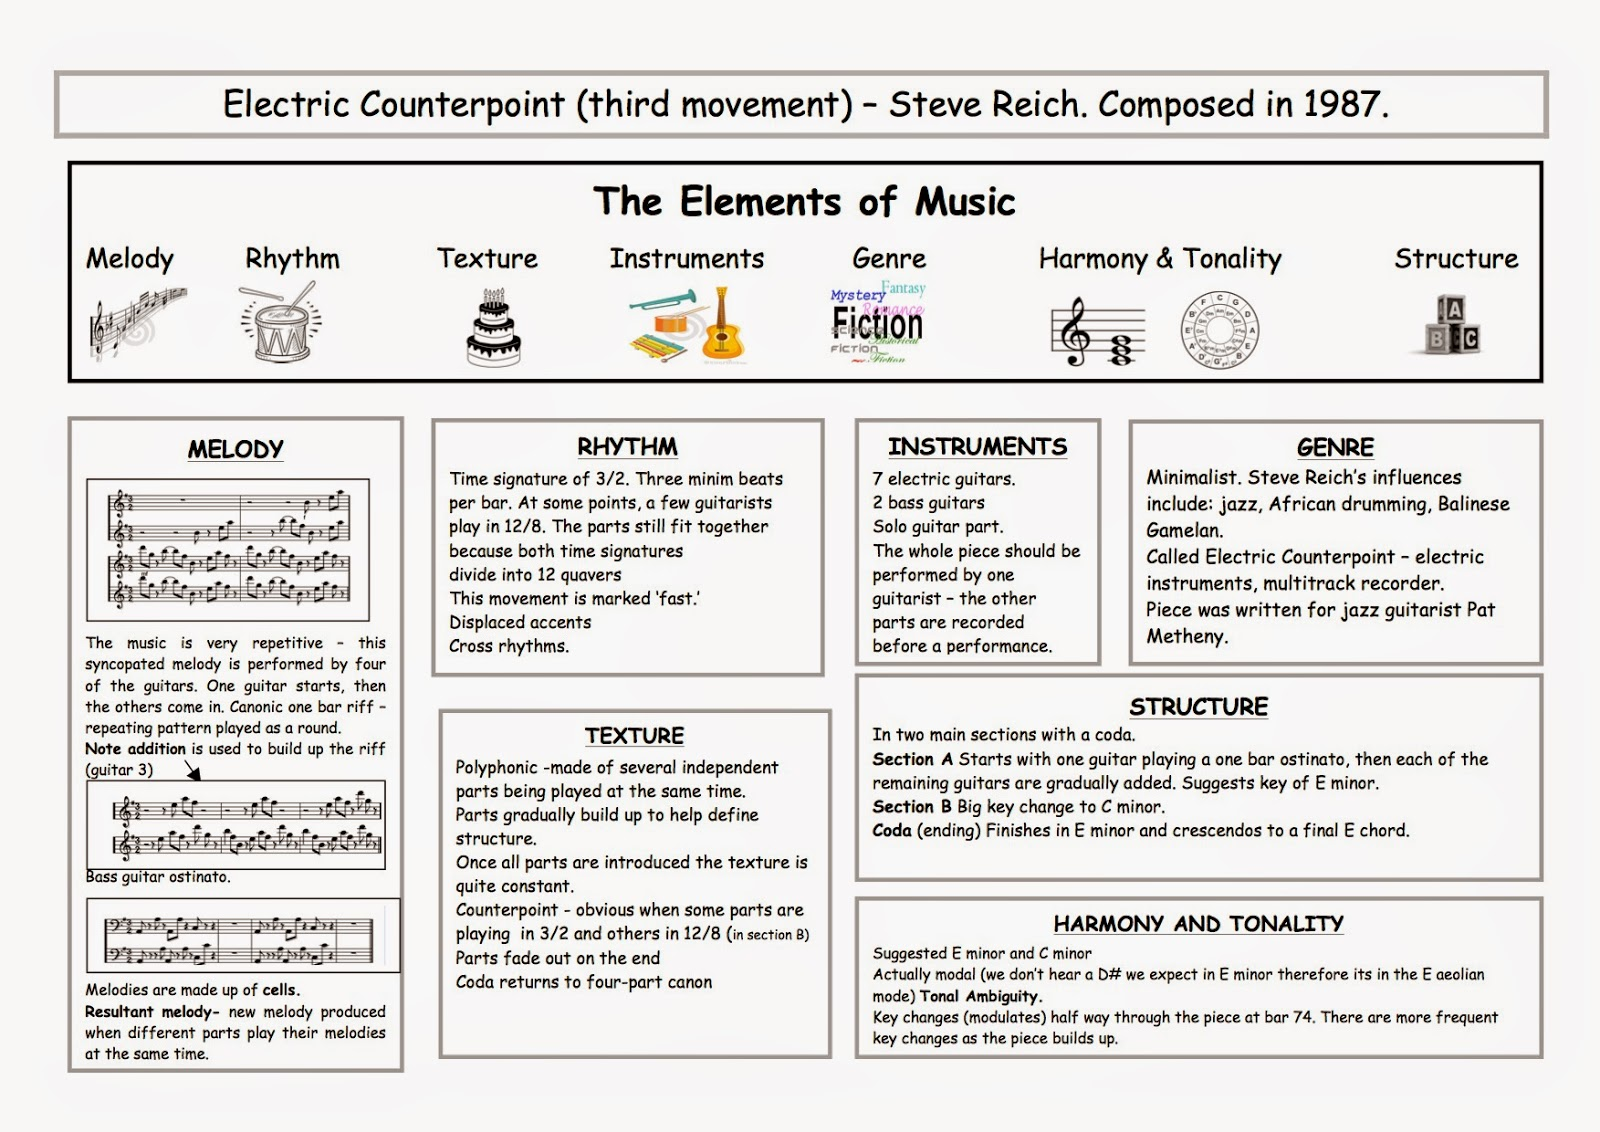 steve reich electric counterpoint gcse Electric counterpoint 3rd movement by steve reich instruments 7 electric guitars 2 bass guitars solo guitar part (who plays along with a mult-track.